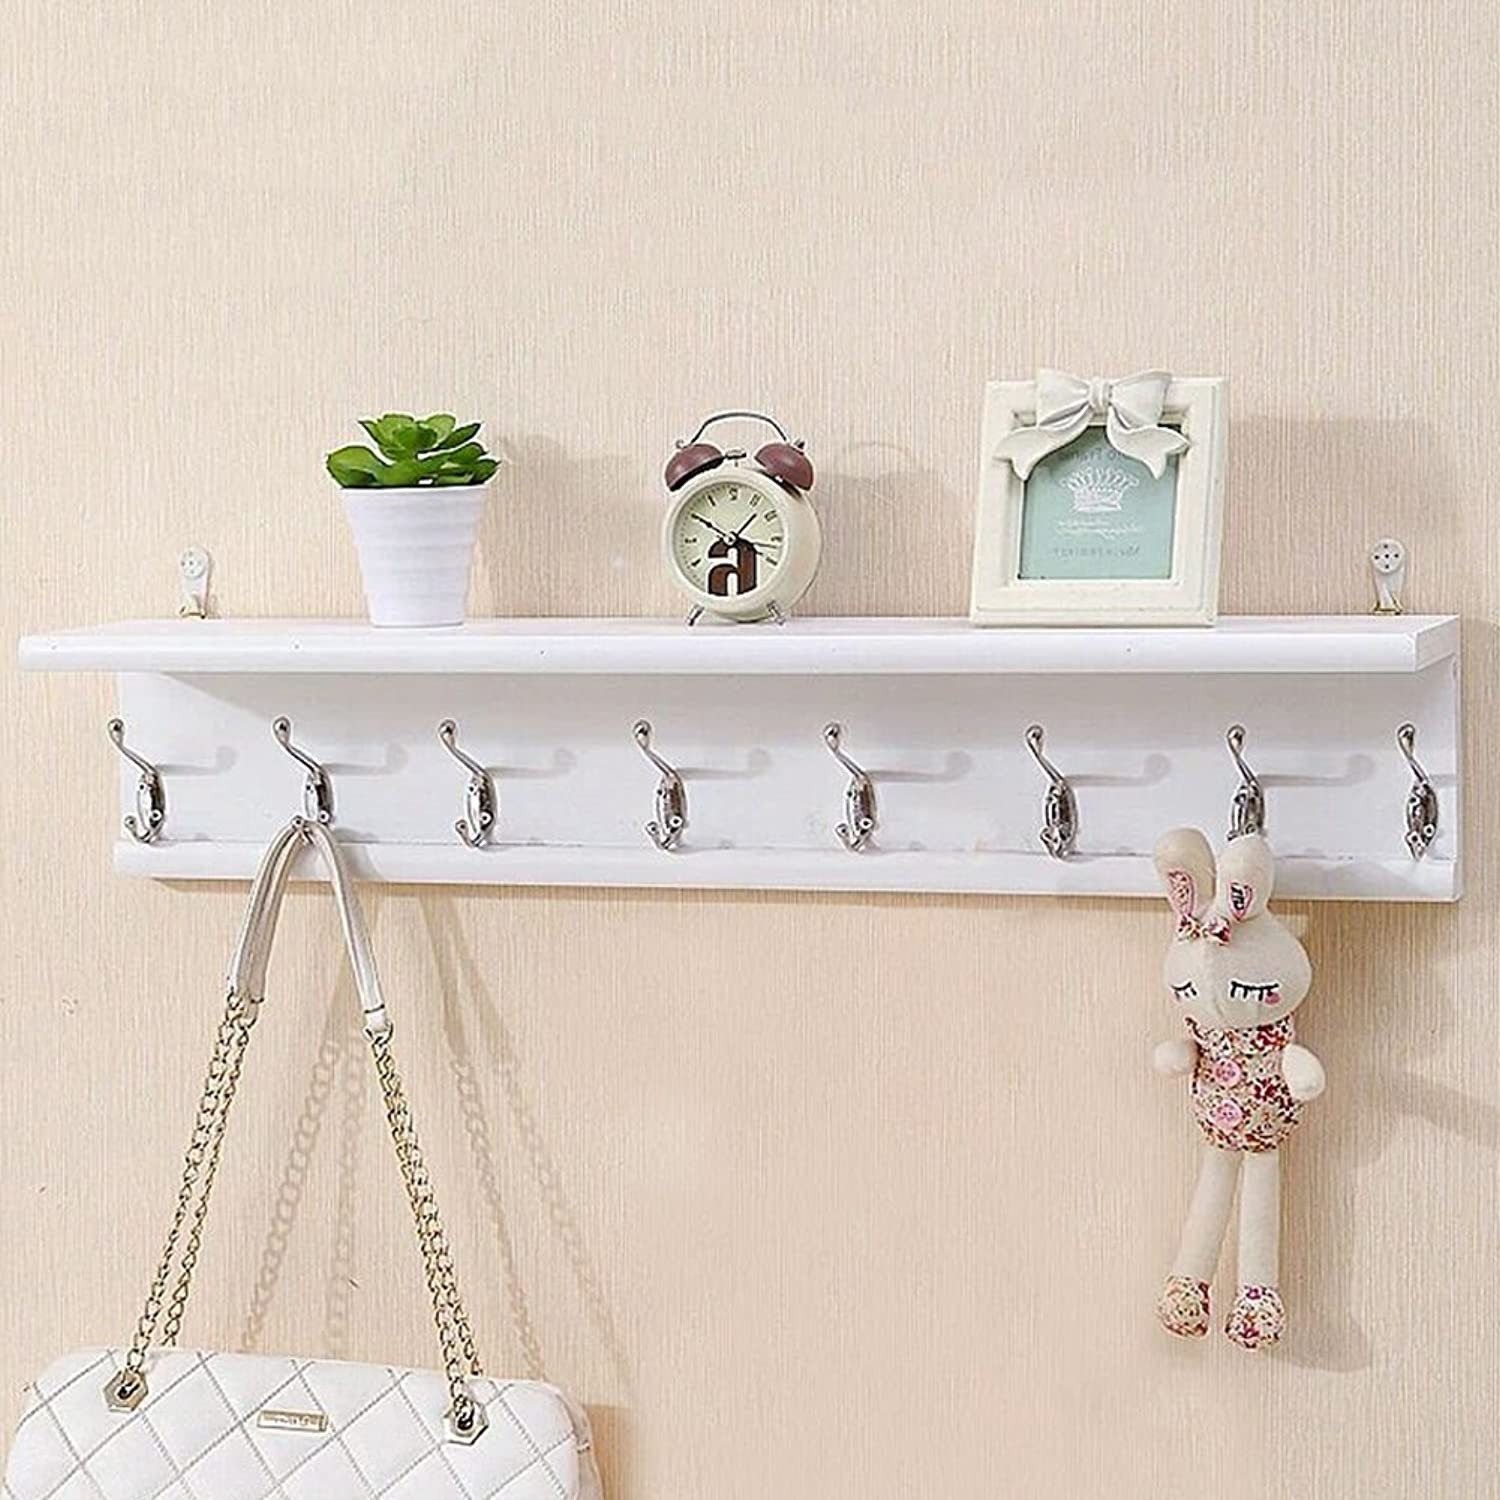 LIANGLIANG Floating Wall Shelves Shelf Coat Rack Hanger The Top Can Hold Two Layer Hooks Solid Wood 3 colors 3 Kinds of Sizes (color   White, Size   80  15  15cm)